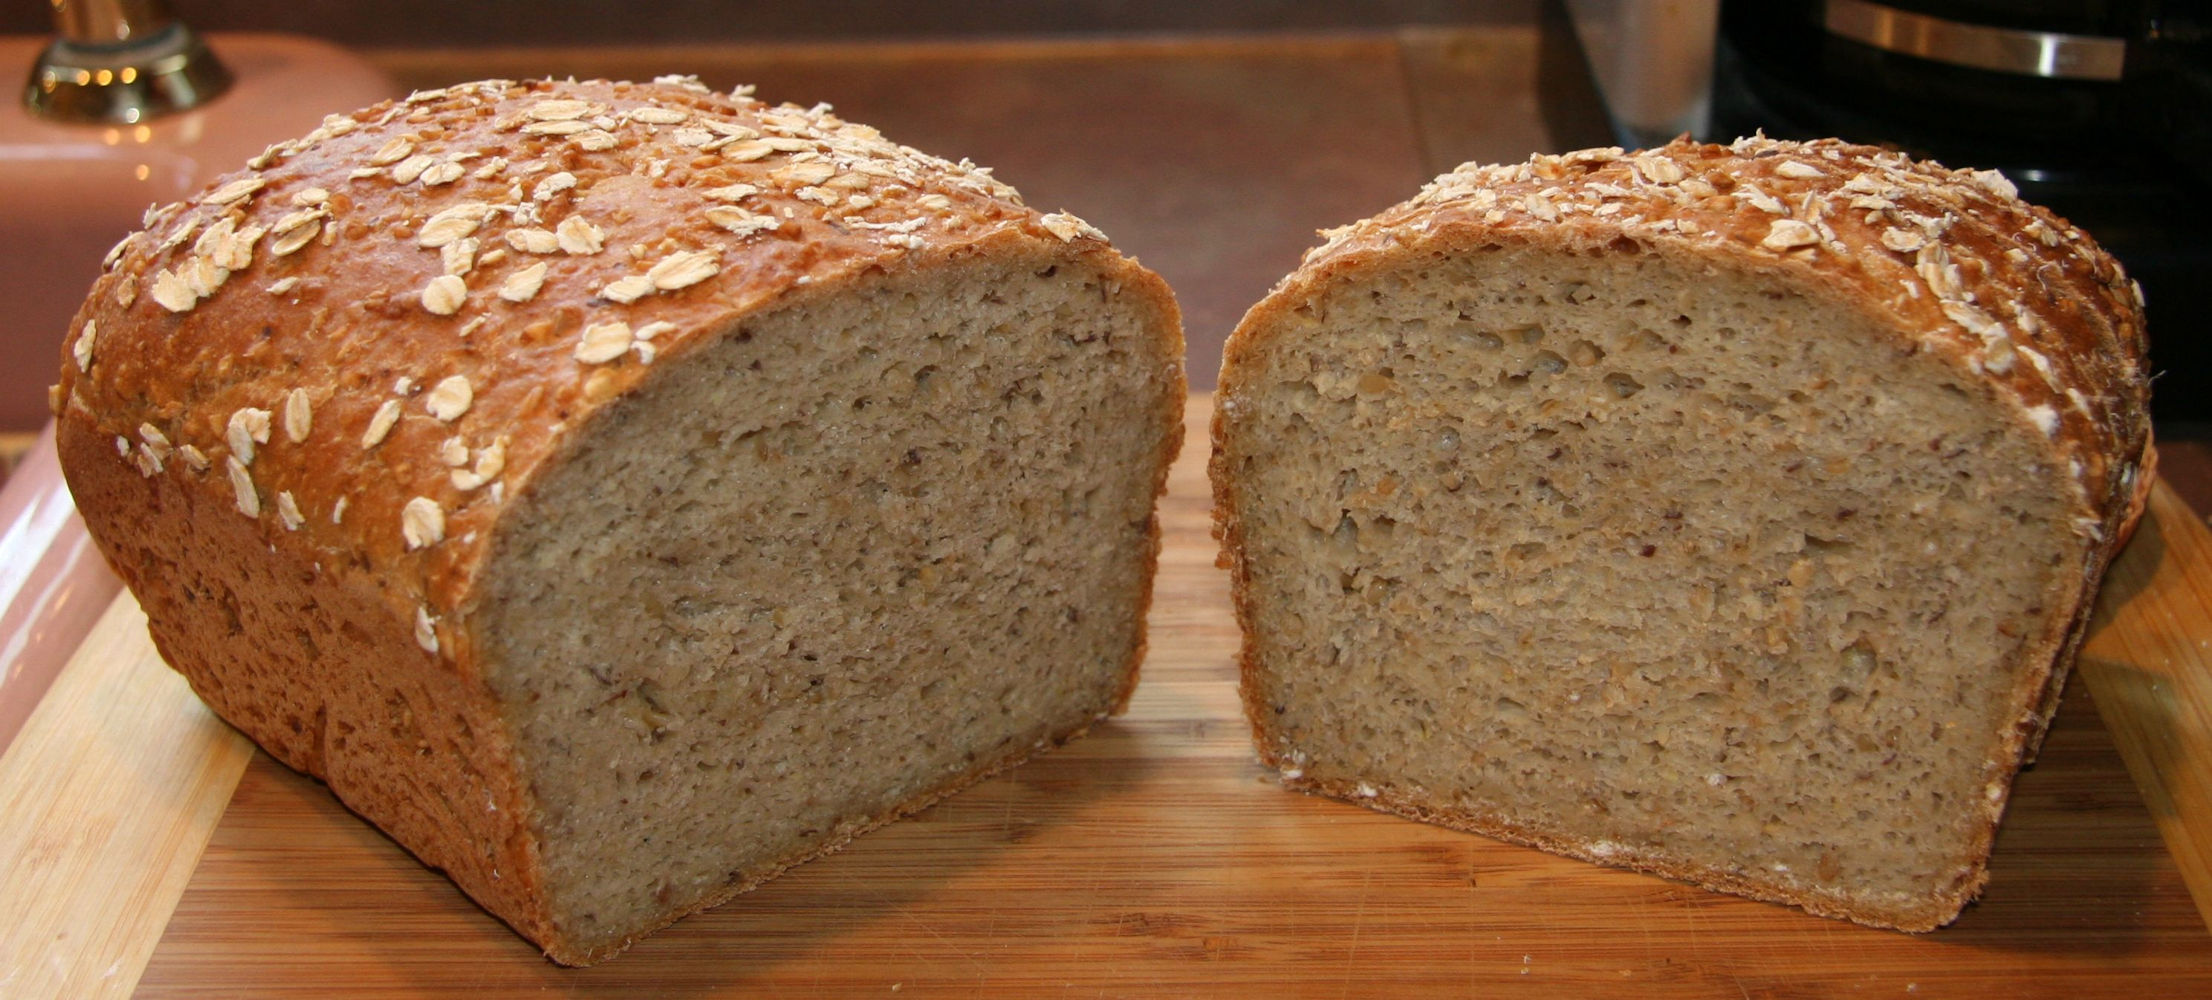 Whole Wheat and Steel-Cut Oats Bread - A Long-Fermentation Bread